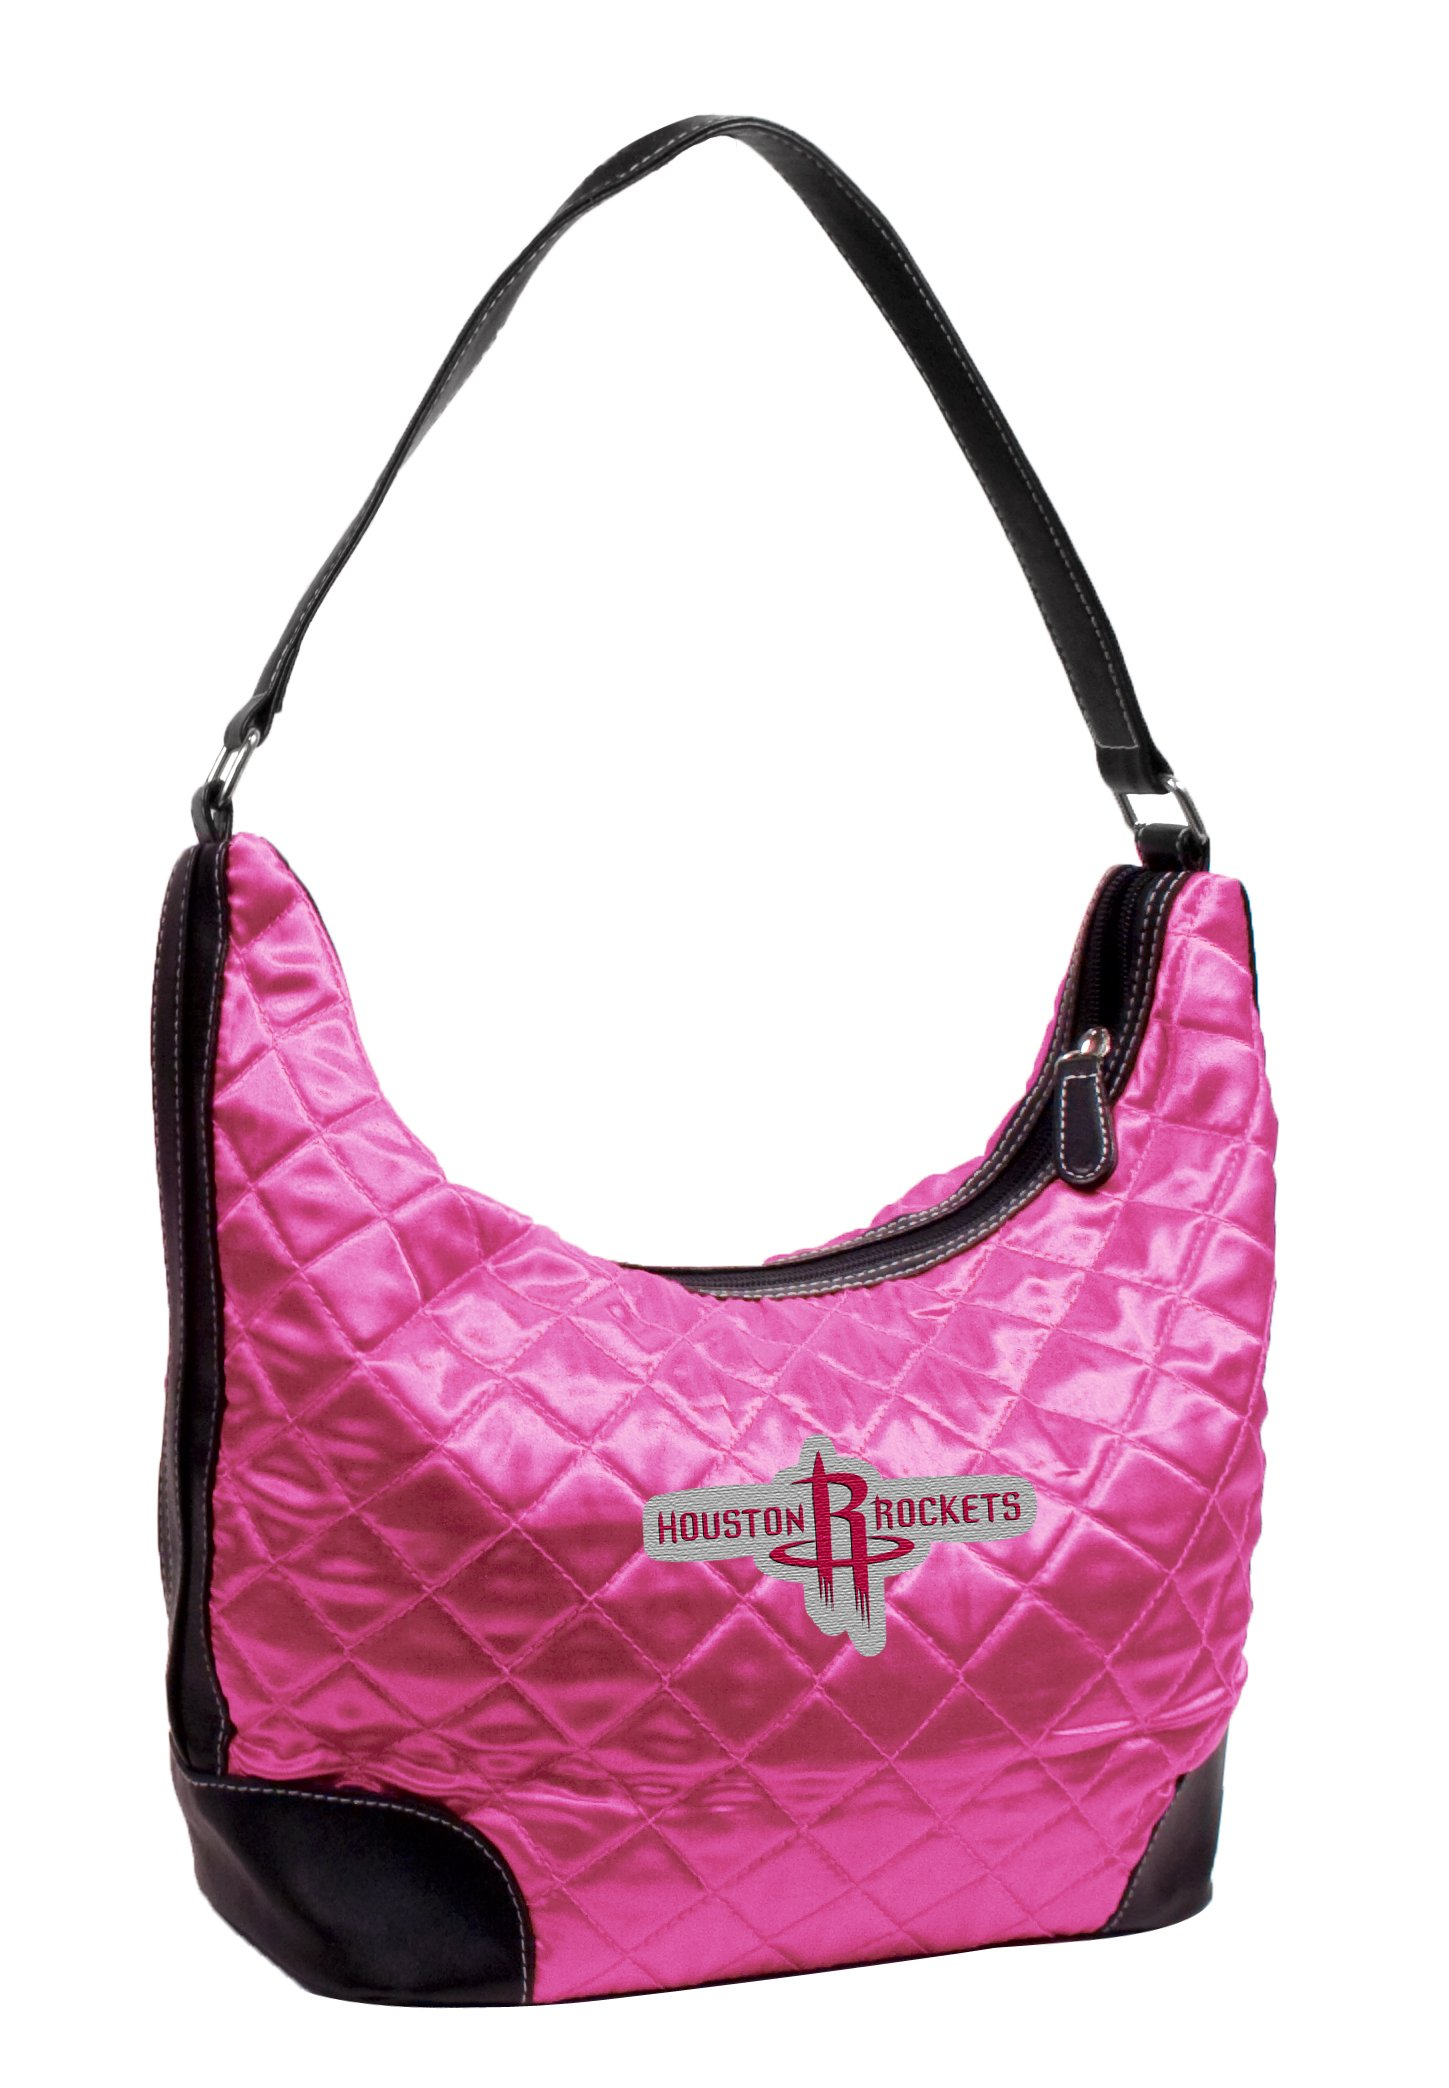 NBA Houston Rockets Quilted Hobo